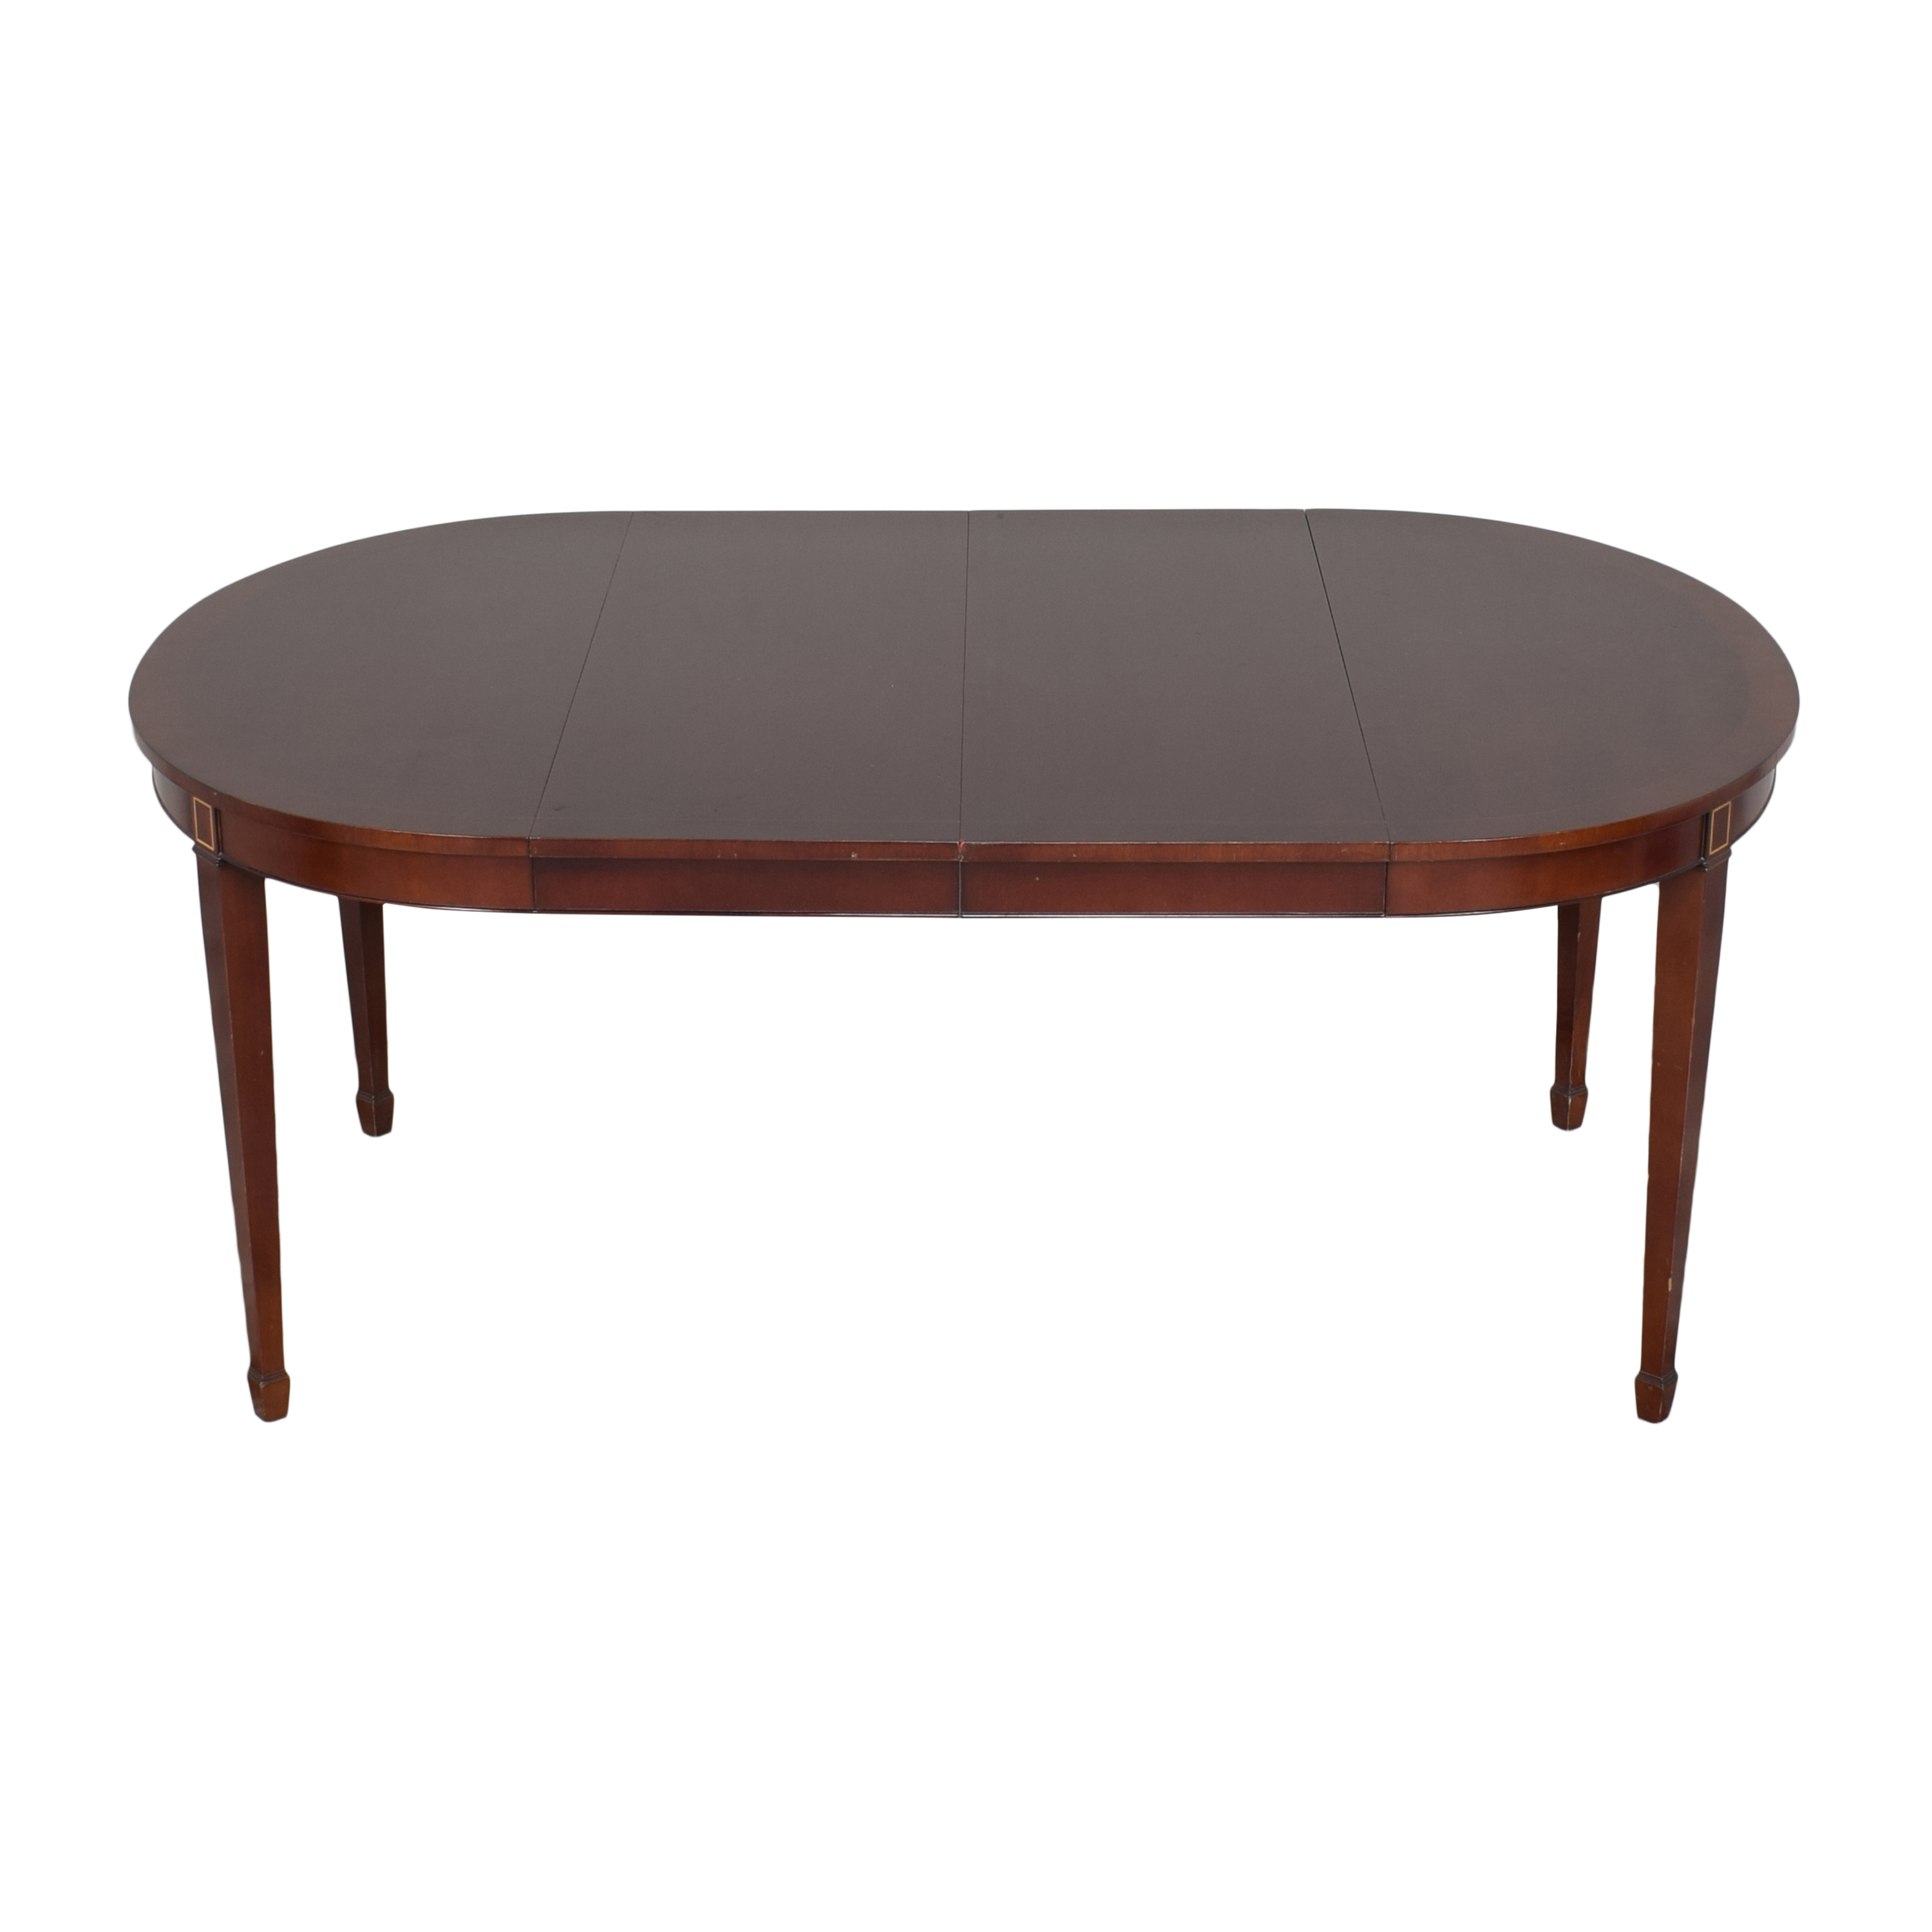 Kindel Kindel Round Extendable Dining Table second hand